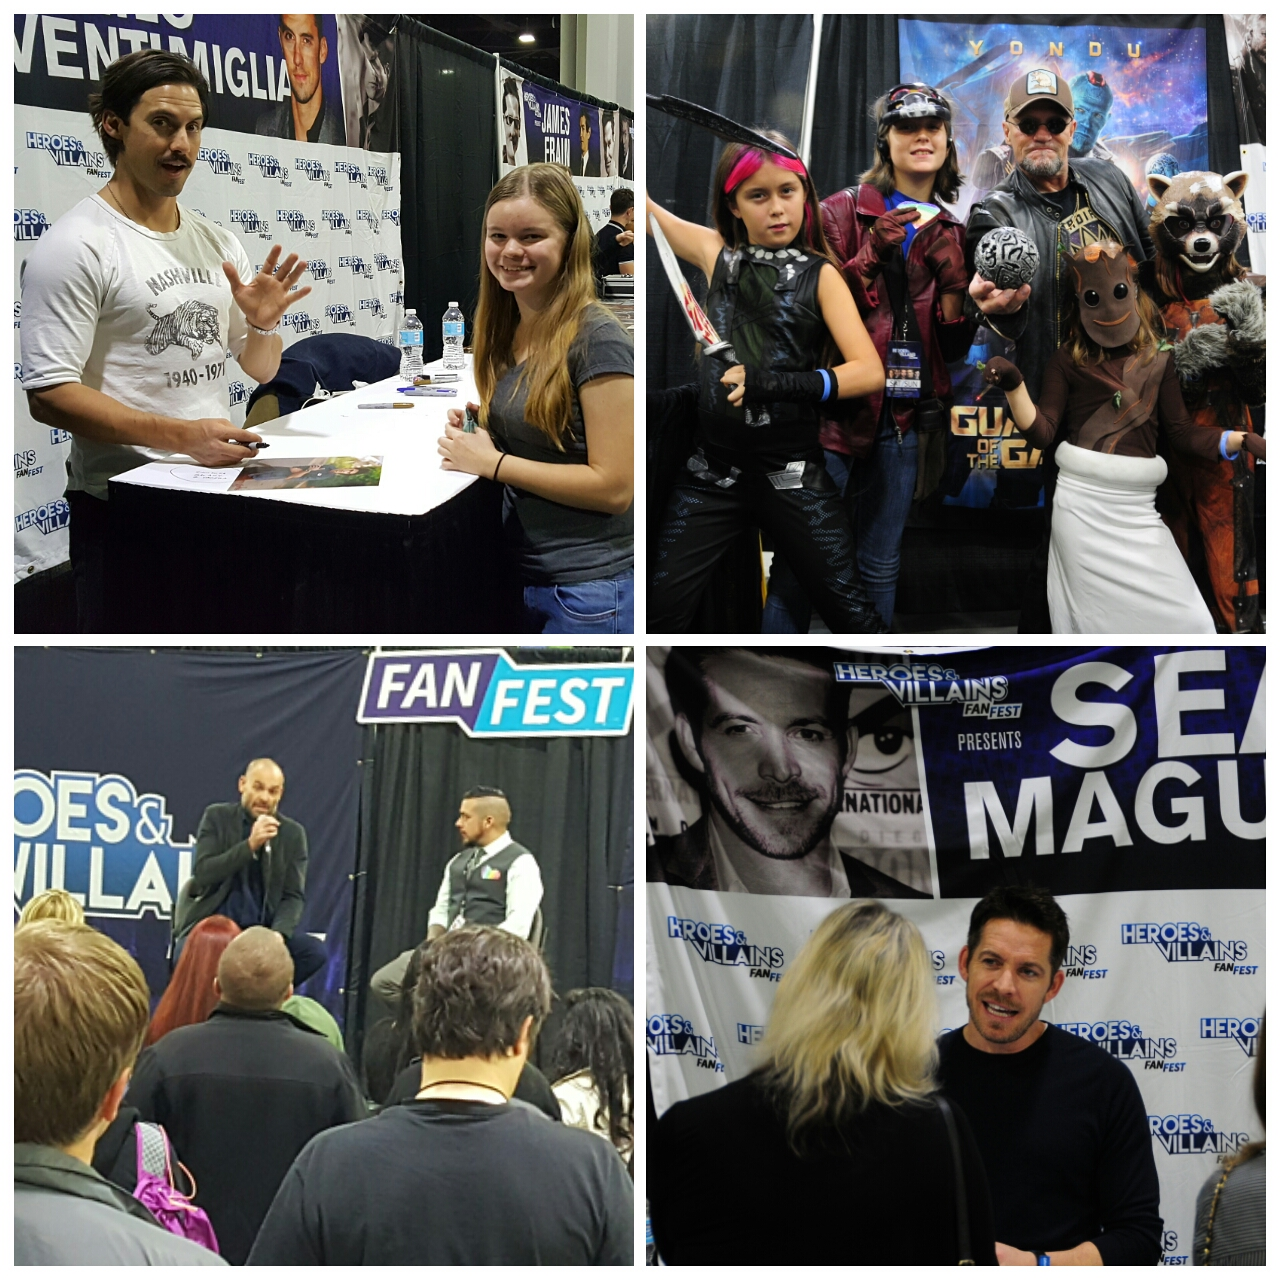 Heroes and Villains Fan Fest HVFF Milo Ventimiglia, Michael Rooker, Sean McGuire, Paul Blackthorne This is Us Guardians of the Galaxy The Walking Dead Onnce Upon a Time Arrow